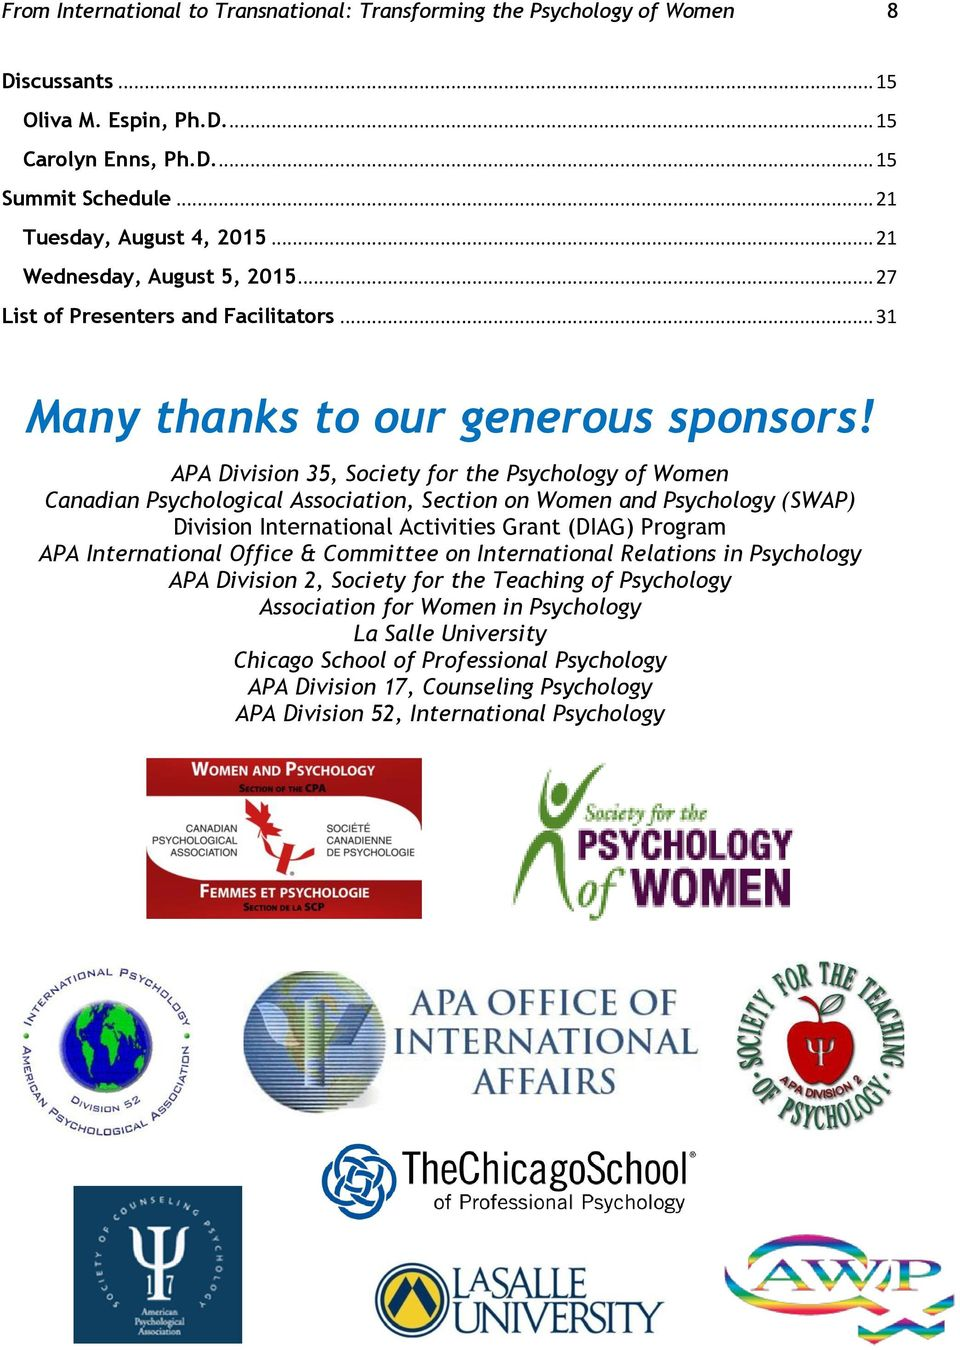 APA Division 35, Society for the Psychology of Women Canadian Psychological Association, Section on Women and Psychology (SWAP) Division International Activities Grant (DIAG) Program APA